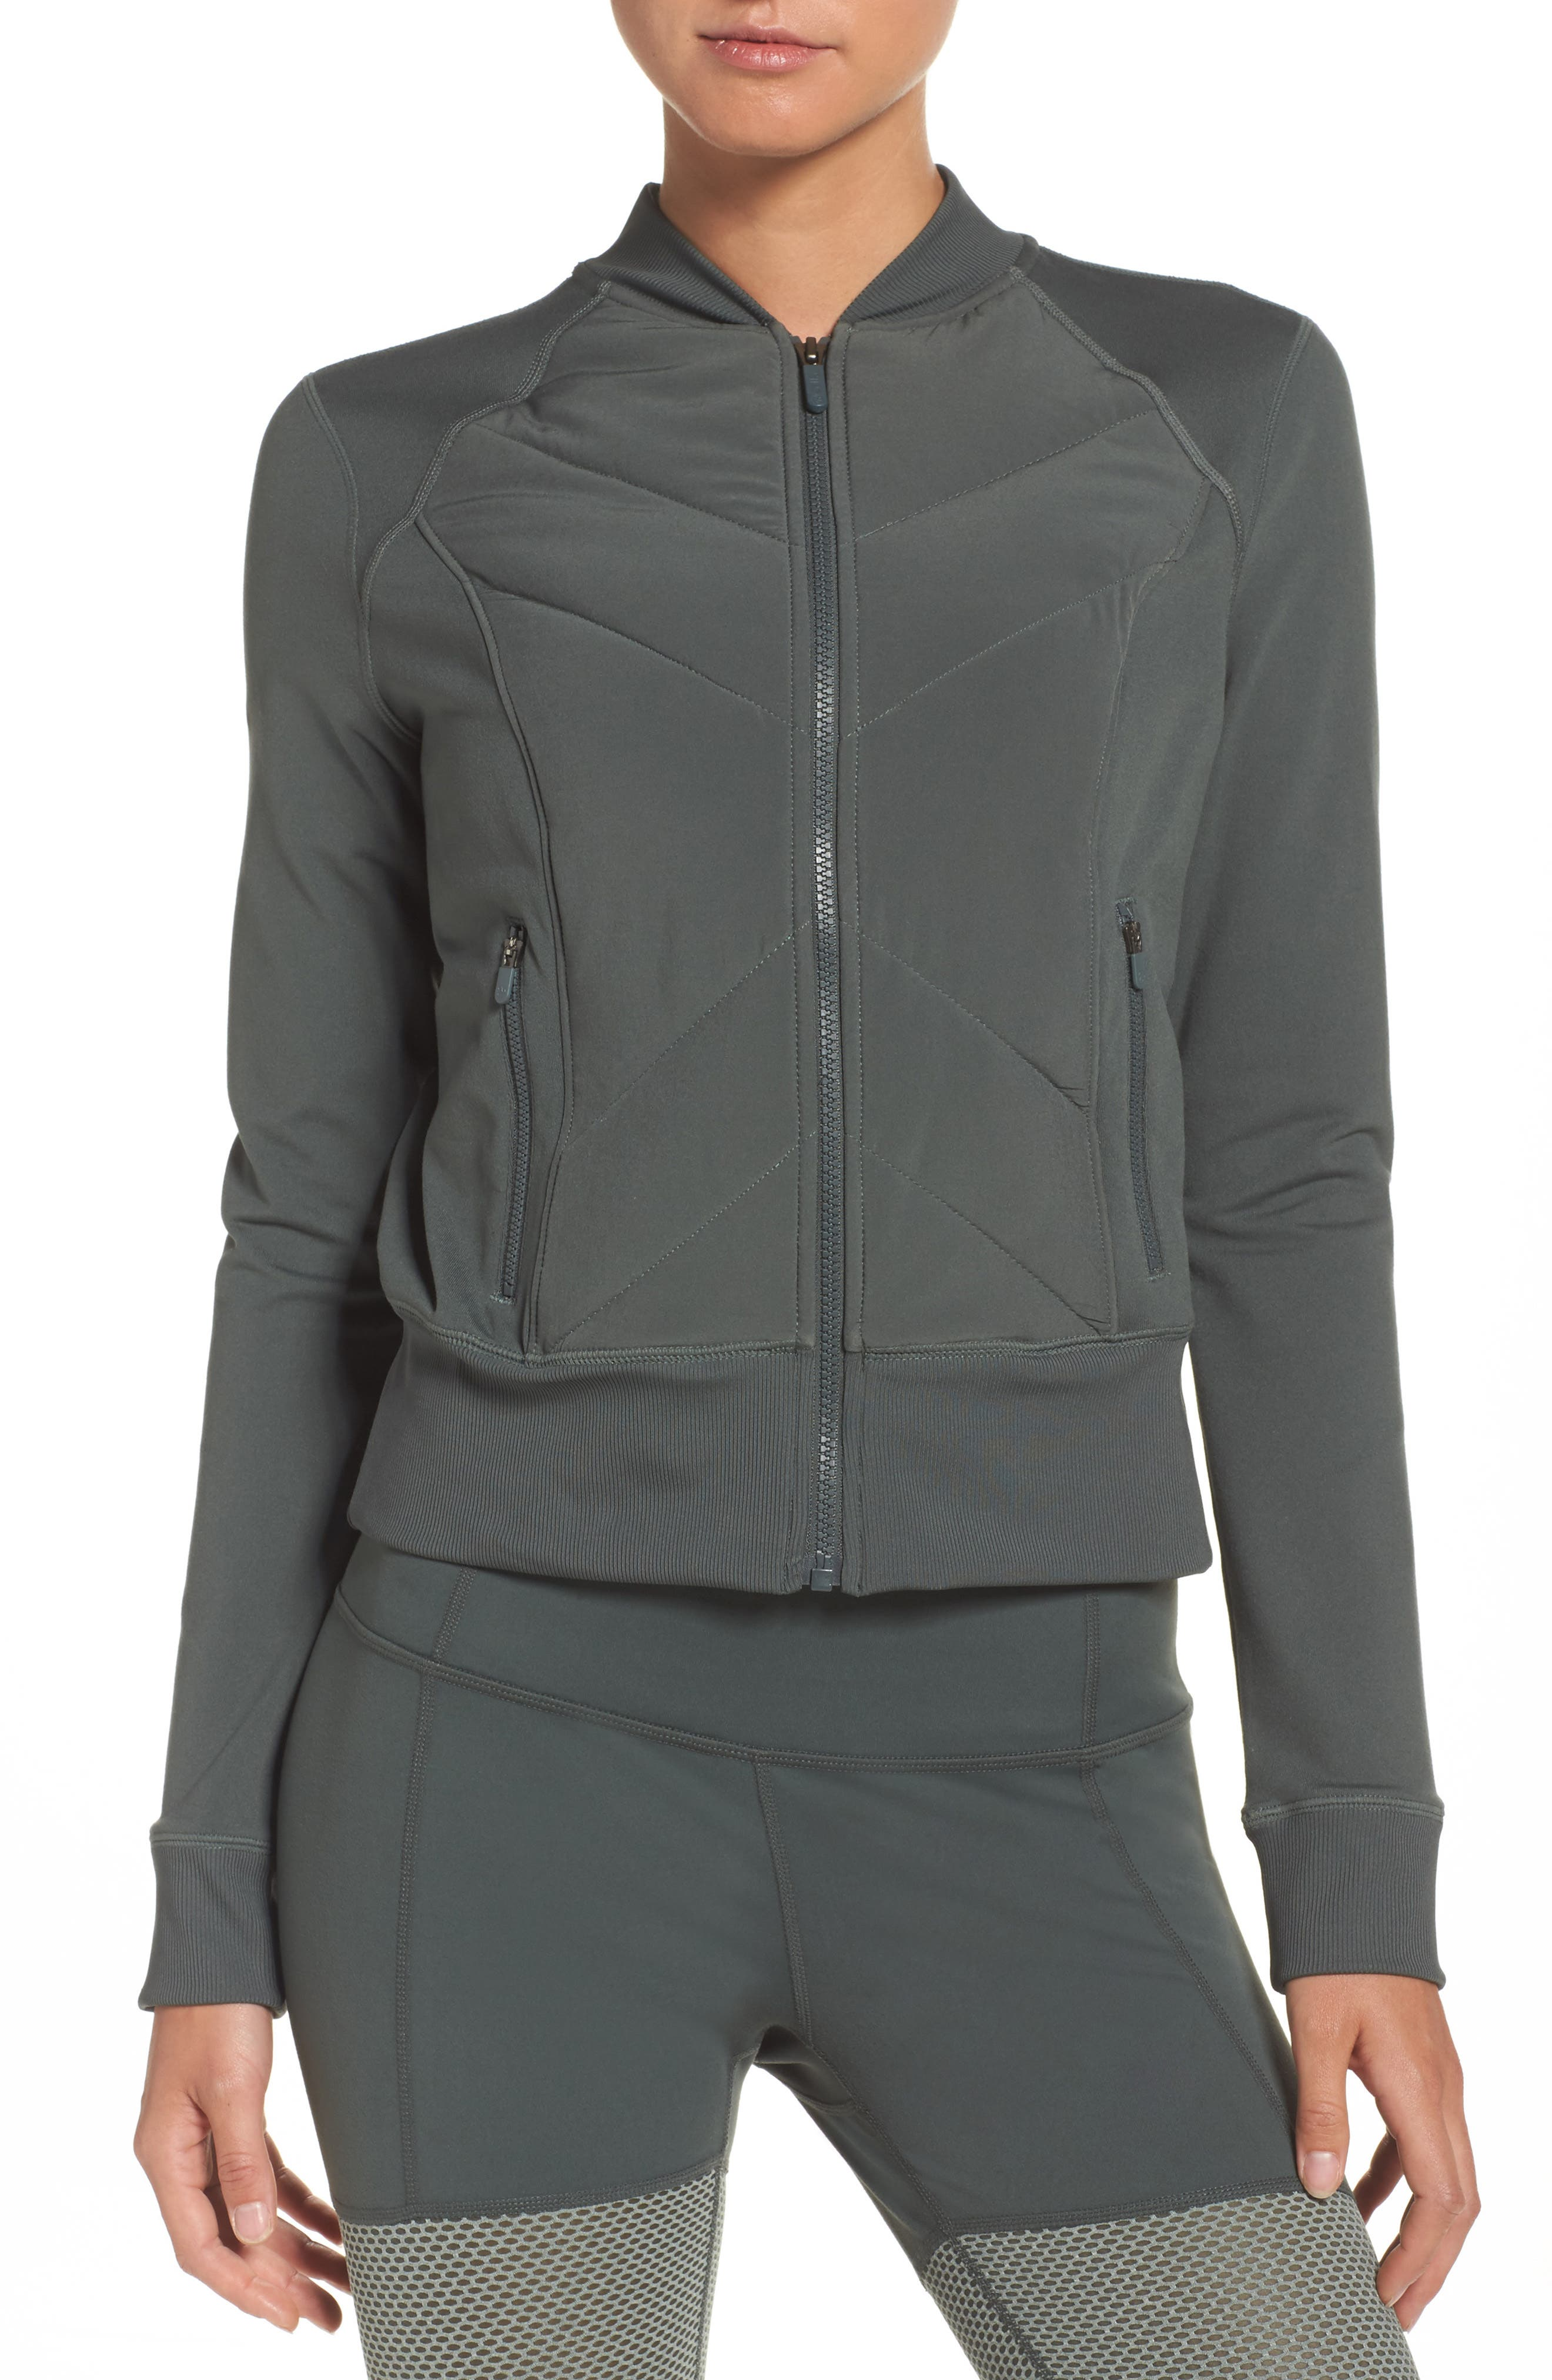 Wear It Out Bomber Jacket,                             Main thumbnail 2, color,